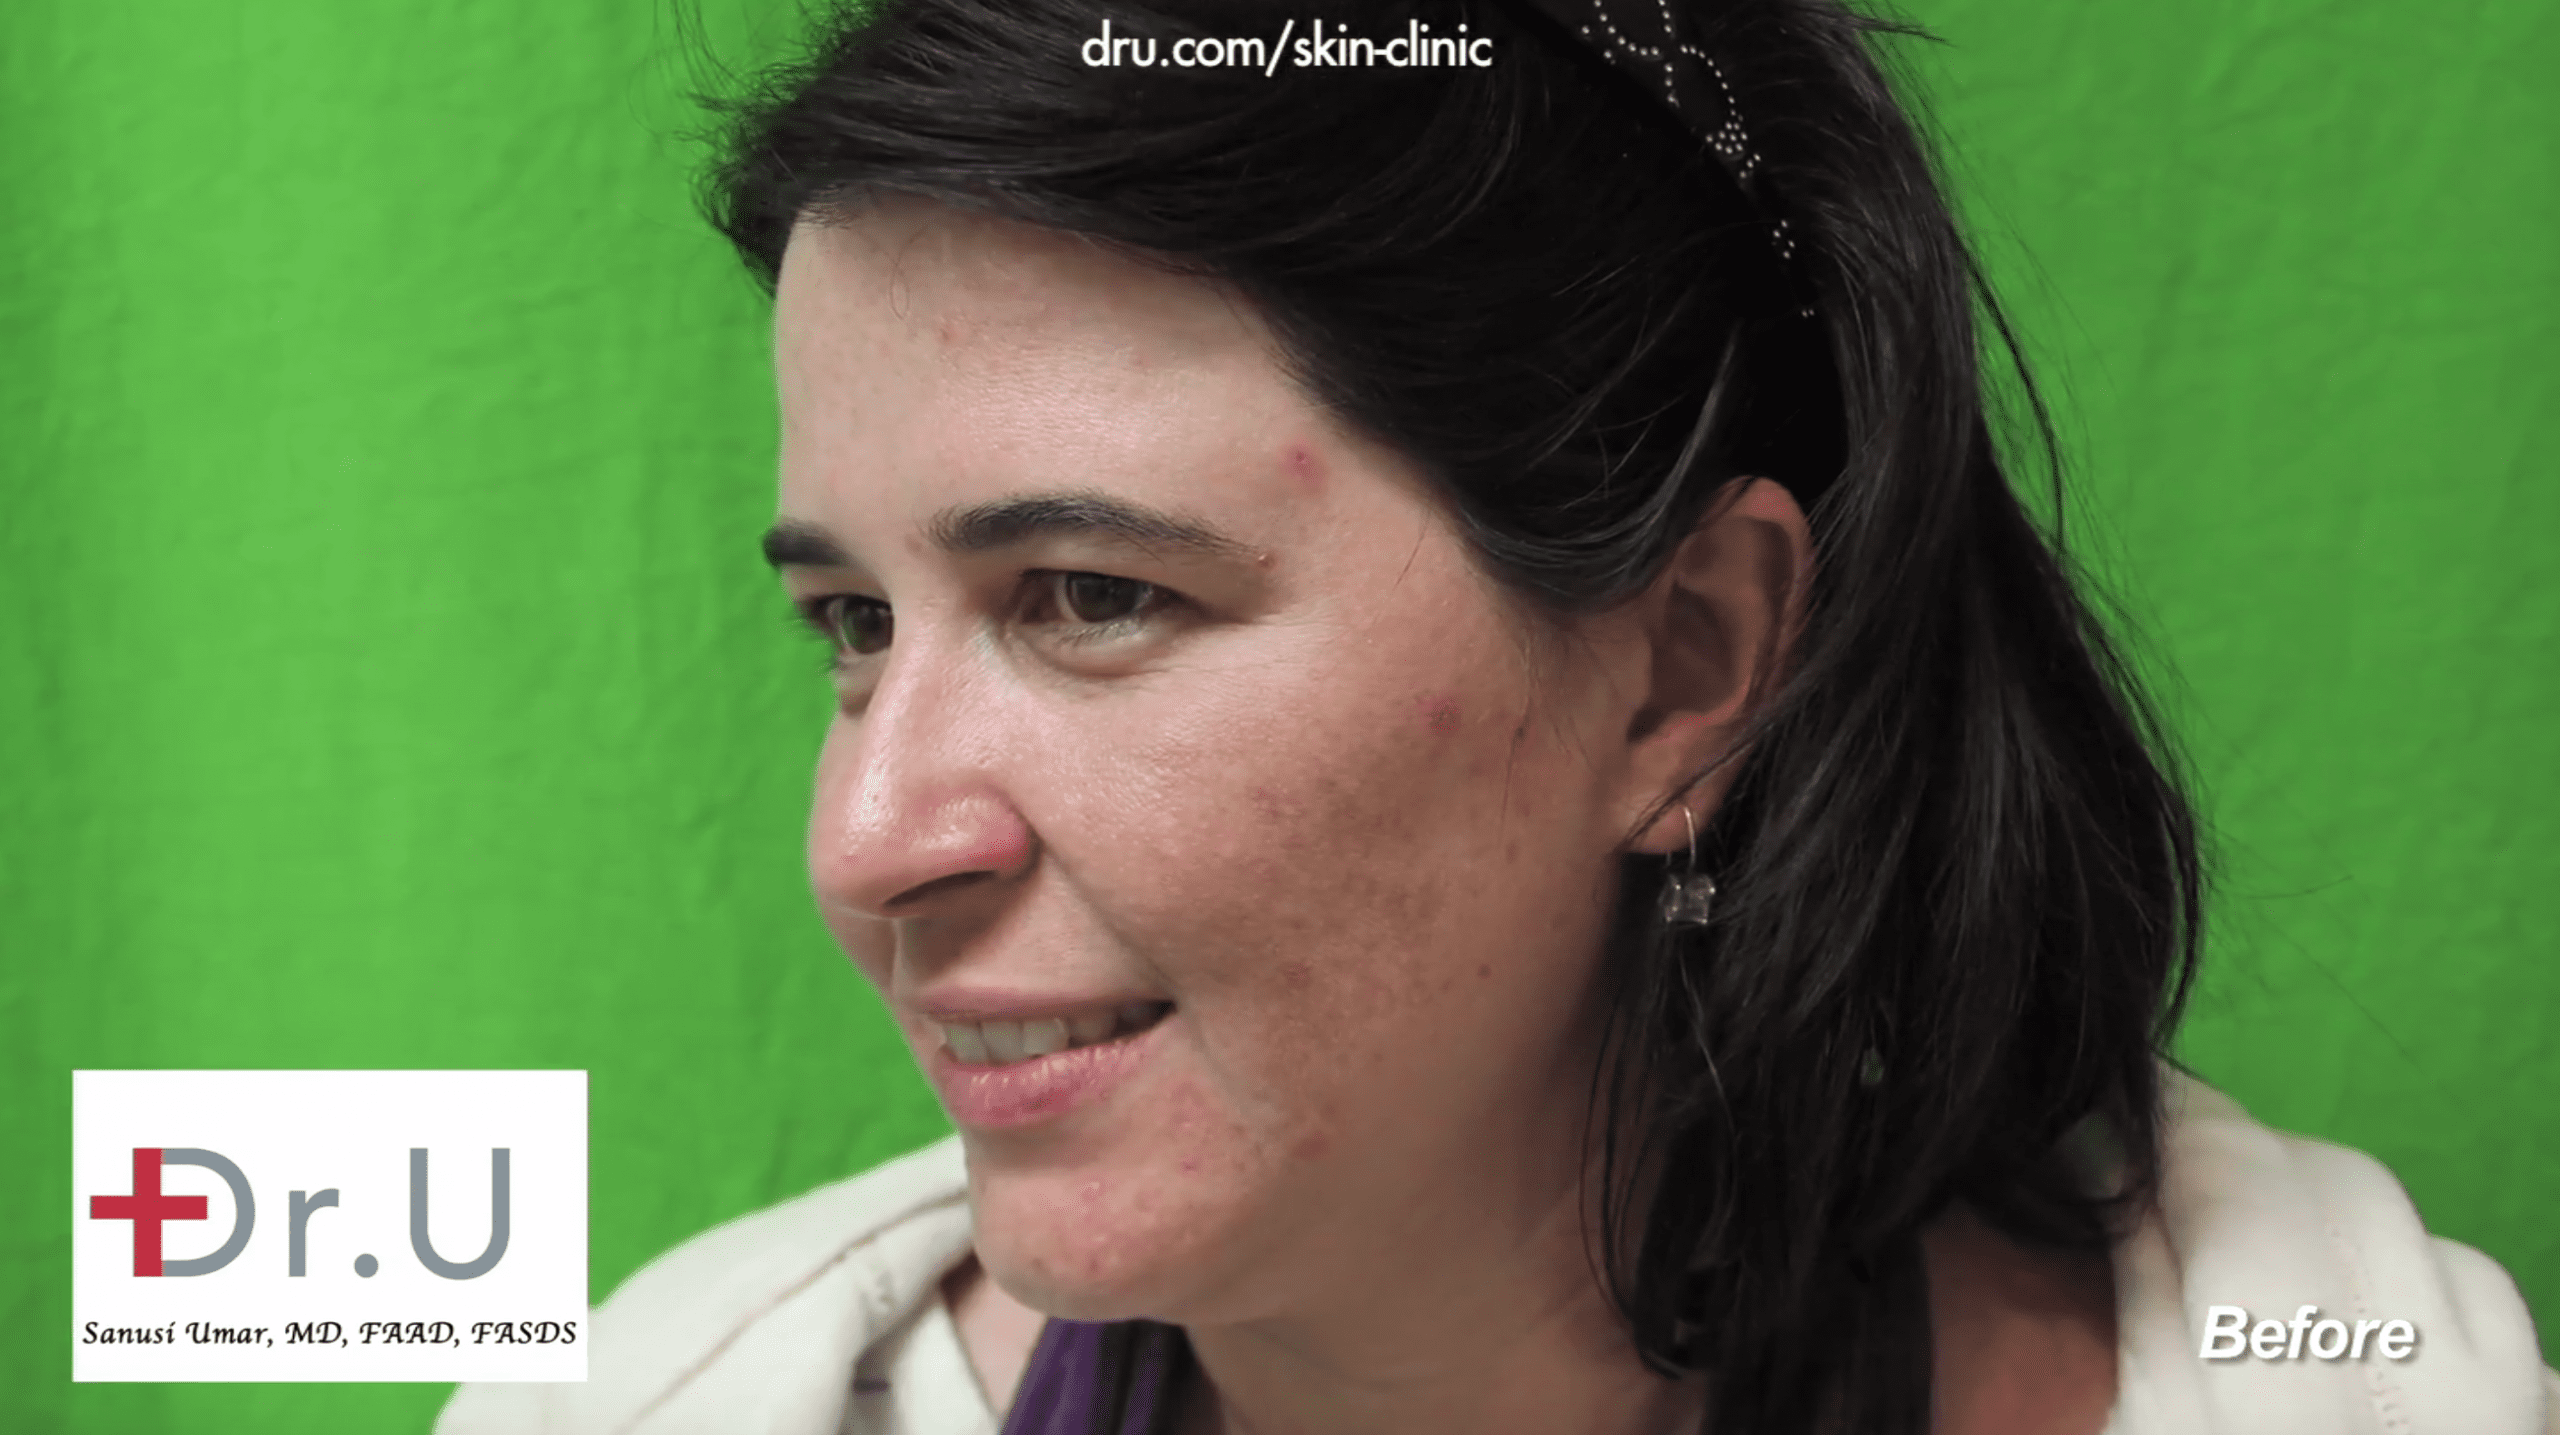 Unknown adult acne causes left this patient with broken skin before finding Dr. U Skin Clinic.